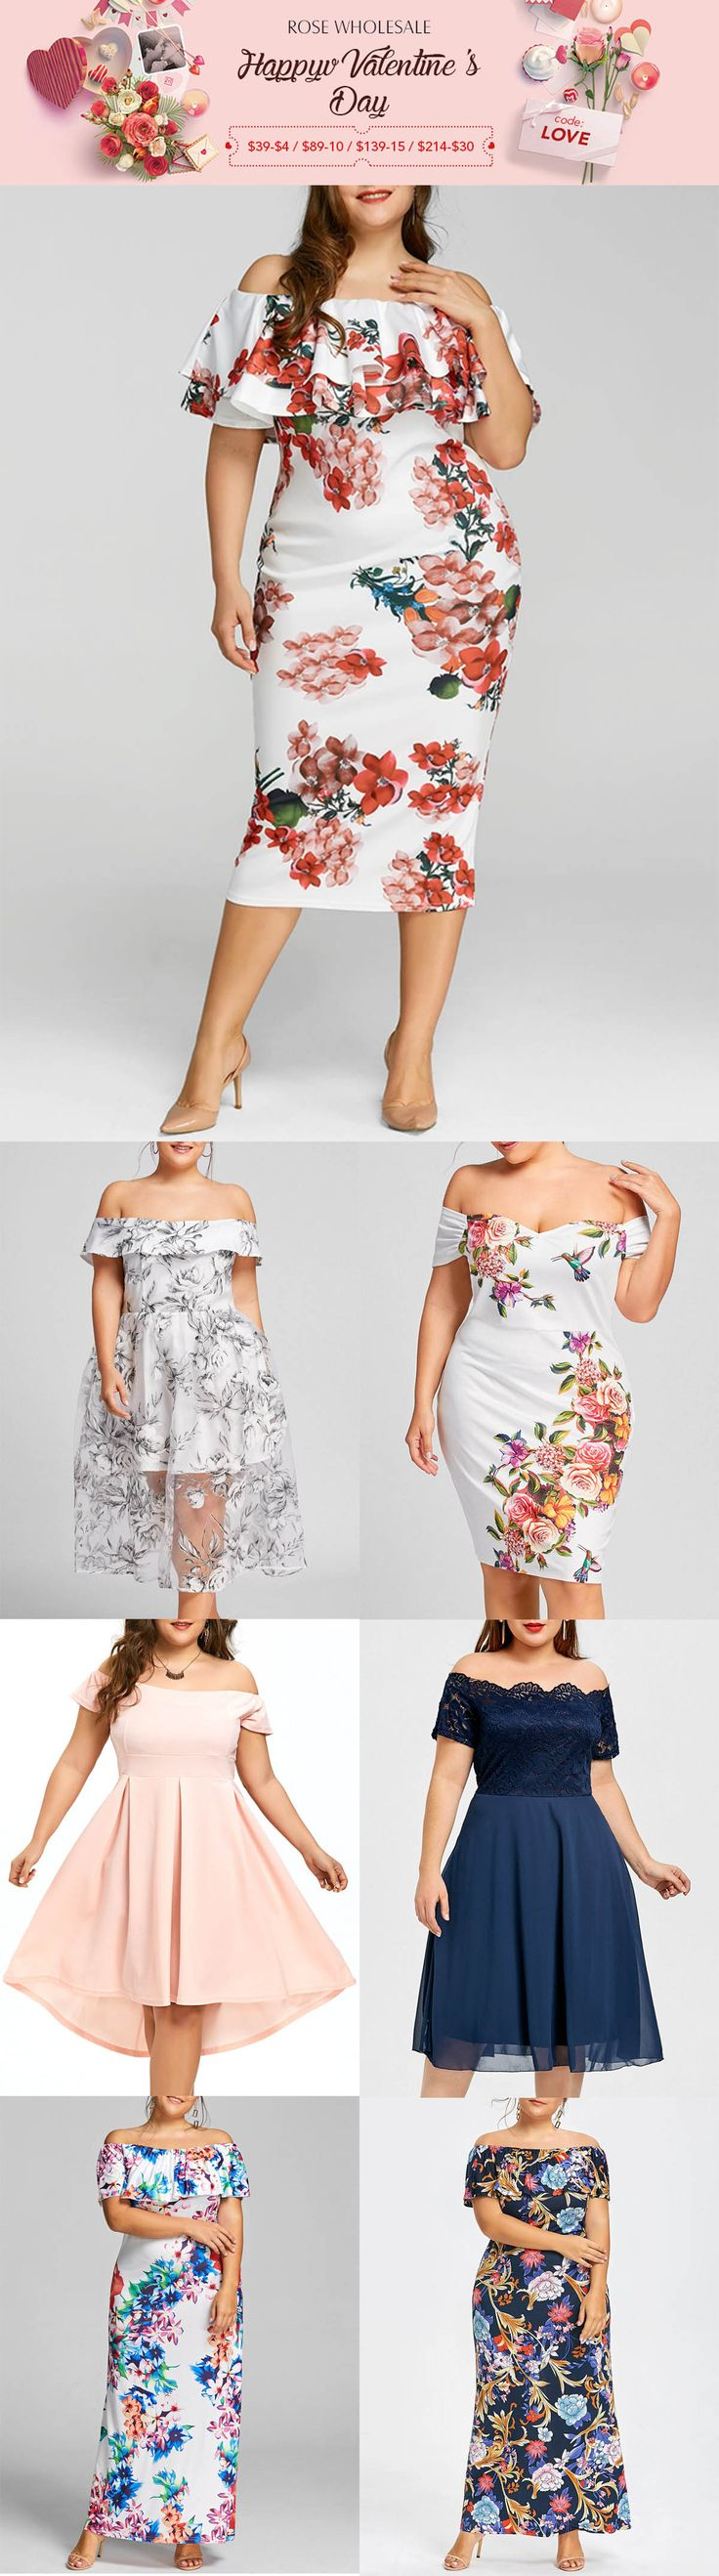 Up to 80% off, Rosewholesale plus size off the shoulder print dress | rosewholesale,rosewholesale.com,rosewholesale dress,rosewholesale plus size,rosewholesale dress plus size,rosewholesale valentines day,rosewholesale Easter,off the shoulder dress,print dress,midi dress,mini dress,maxi dress,prom dress,formal dress,valentines day outfit,valentines day idea,floral dress,plus size | #rosewholesale #dress #plussize #offtheshoulder